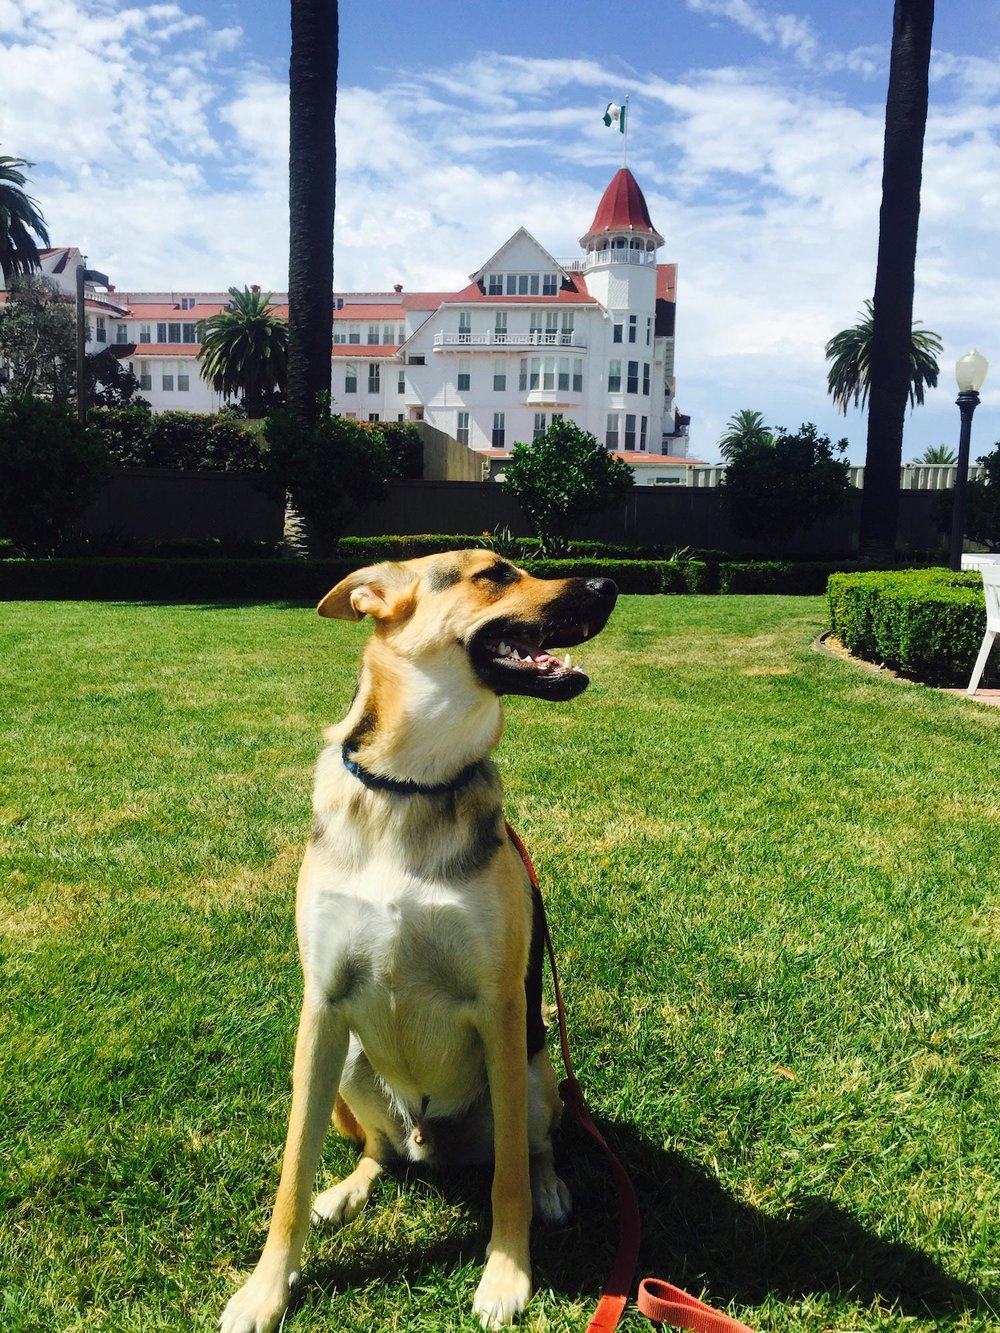 Sapphire & Elm Travel co-founder, Stephanie's Puppy Nephew Roman in front of the hotel del coronado